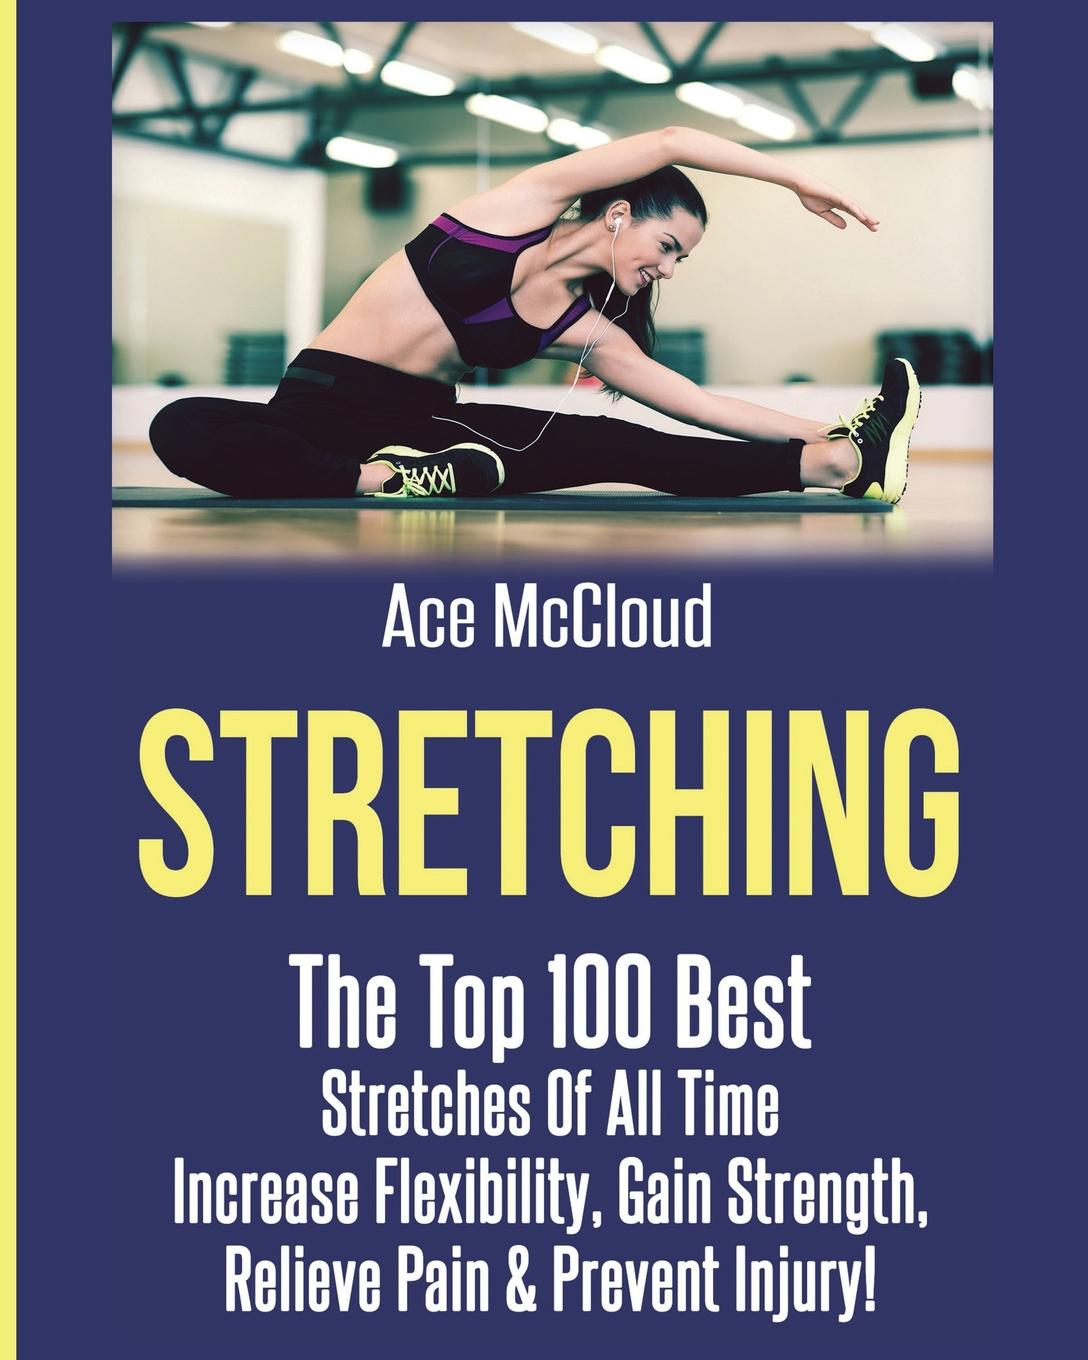 Ace McCloud Stretching. The Top 100 Best Stretches Of All Time: Increase Flexibility, Gain Strength, Relieve Pain . Prevent Injury